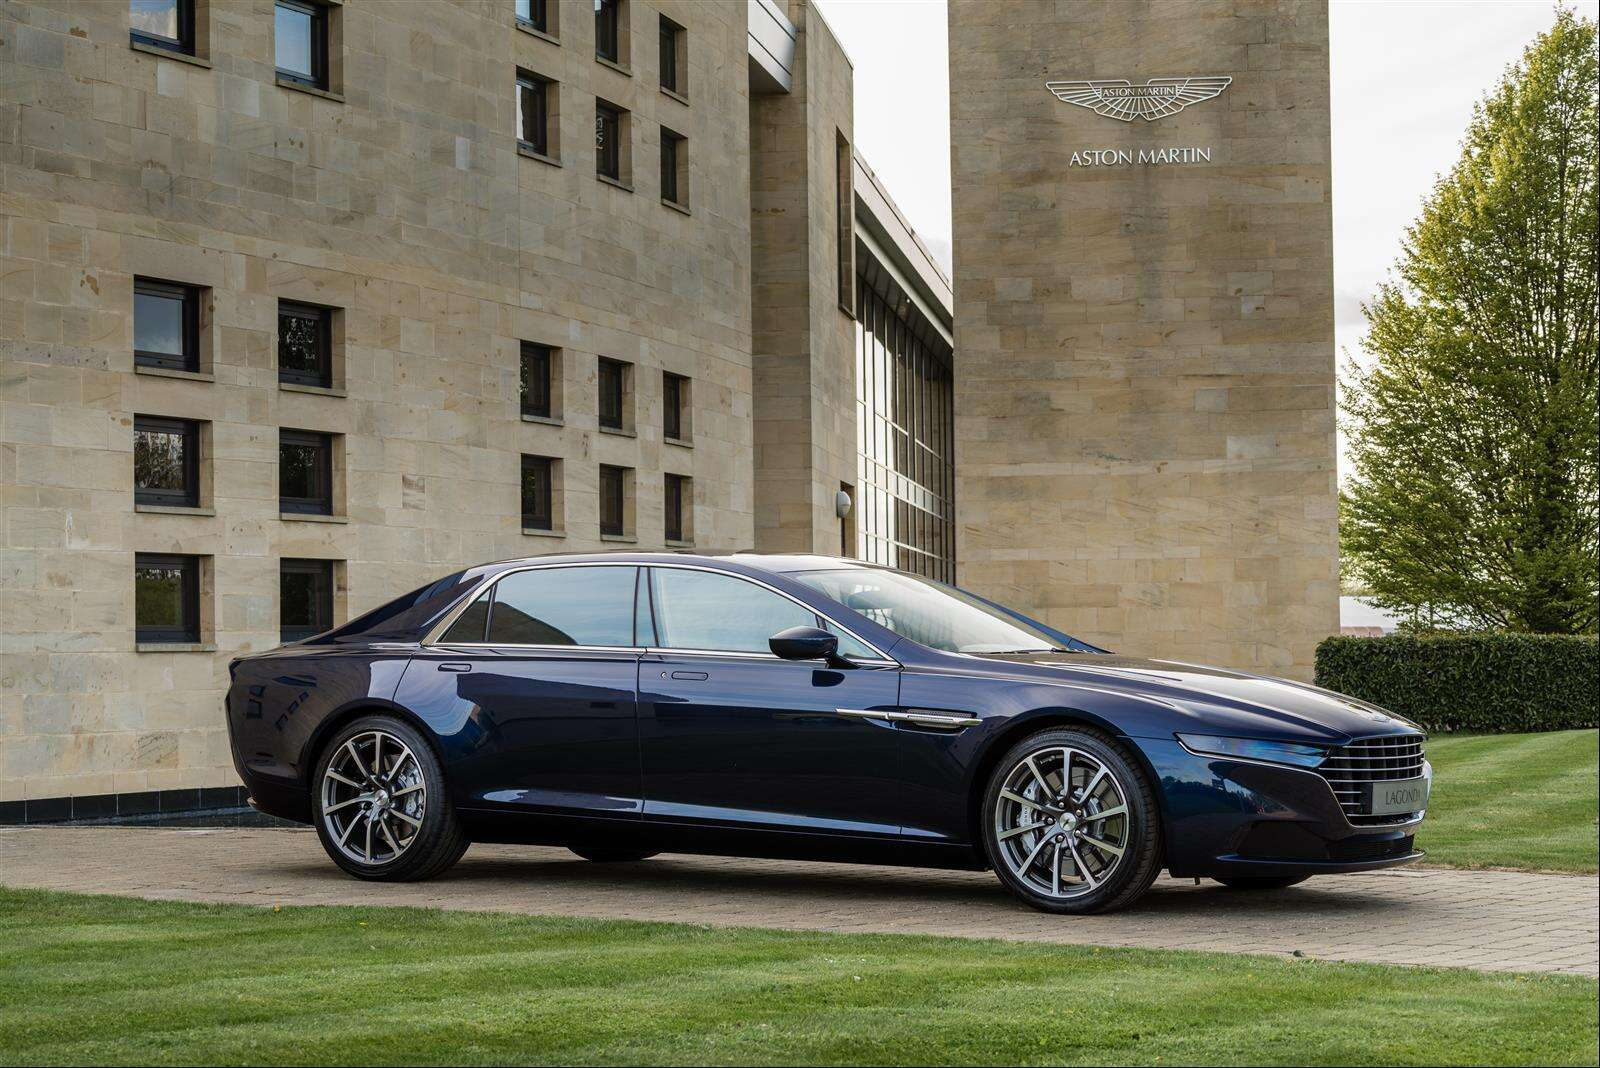 aston martin will have two lagonda models out2023 - the drive